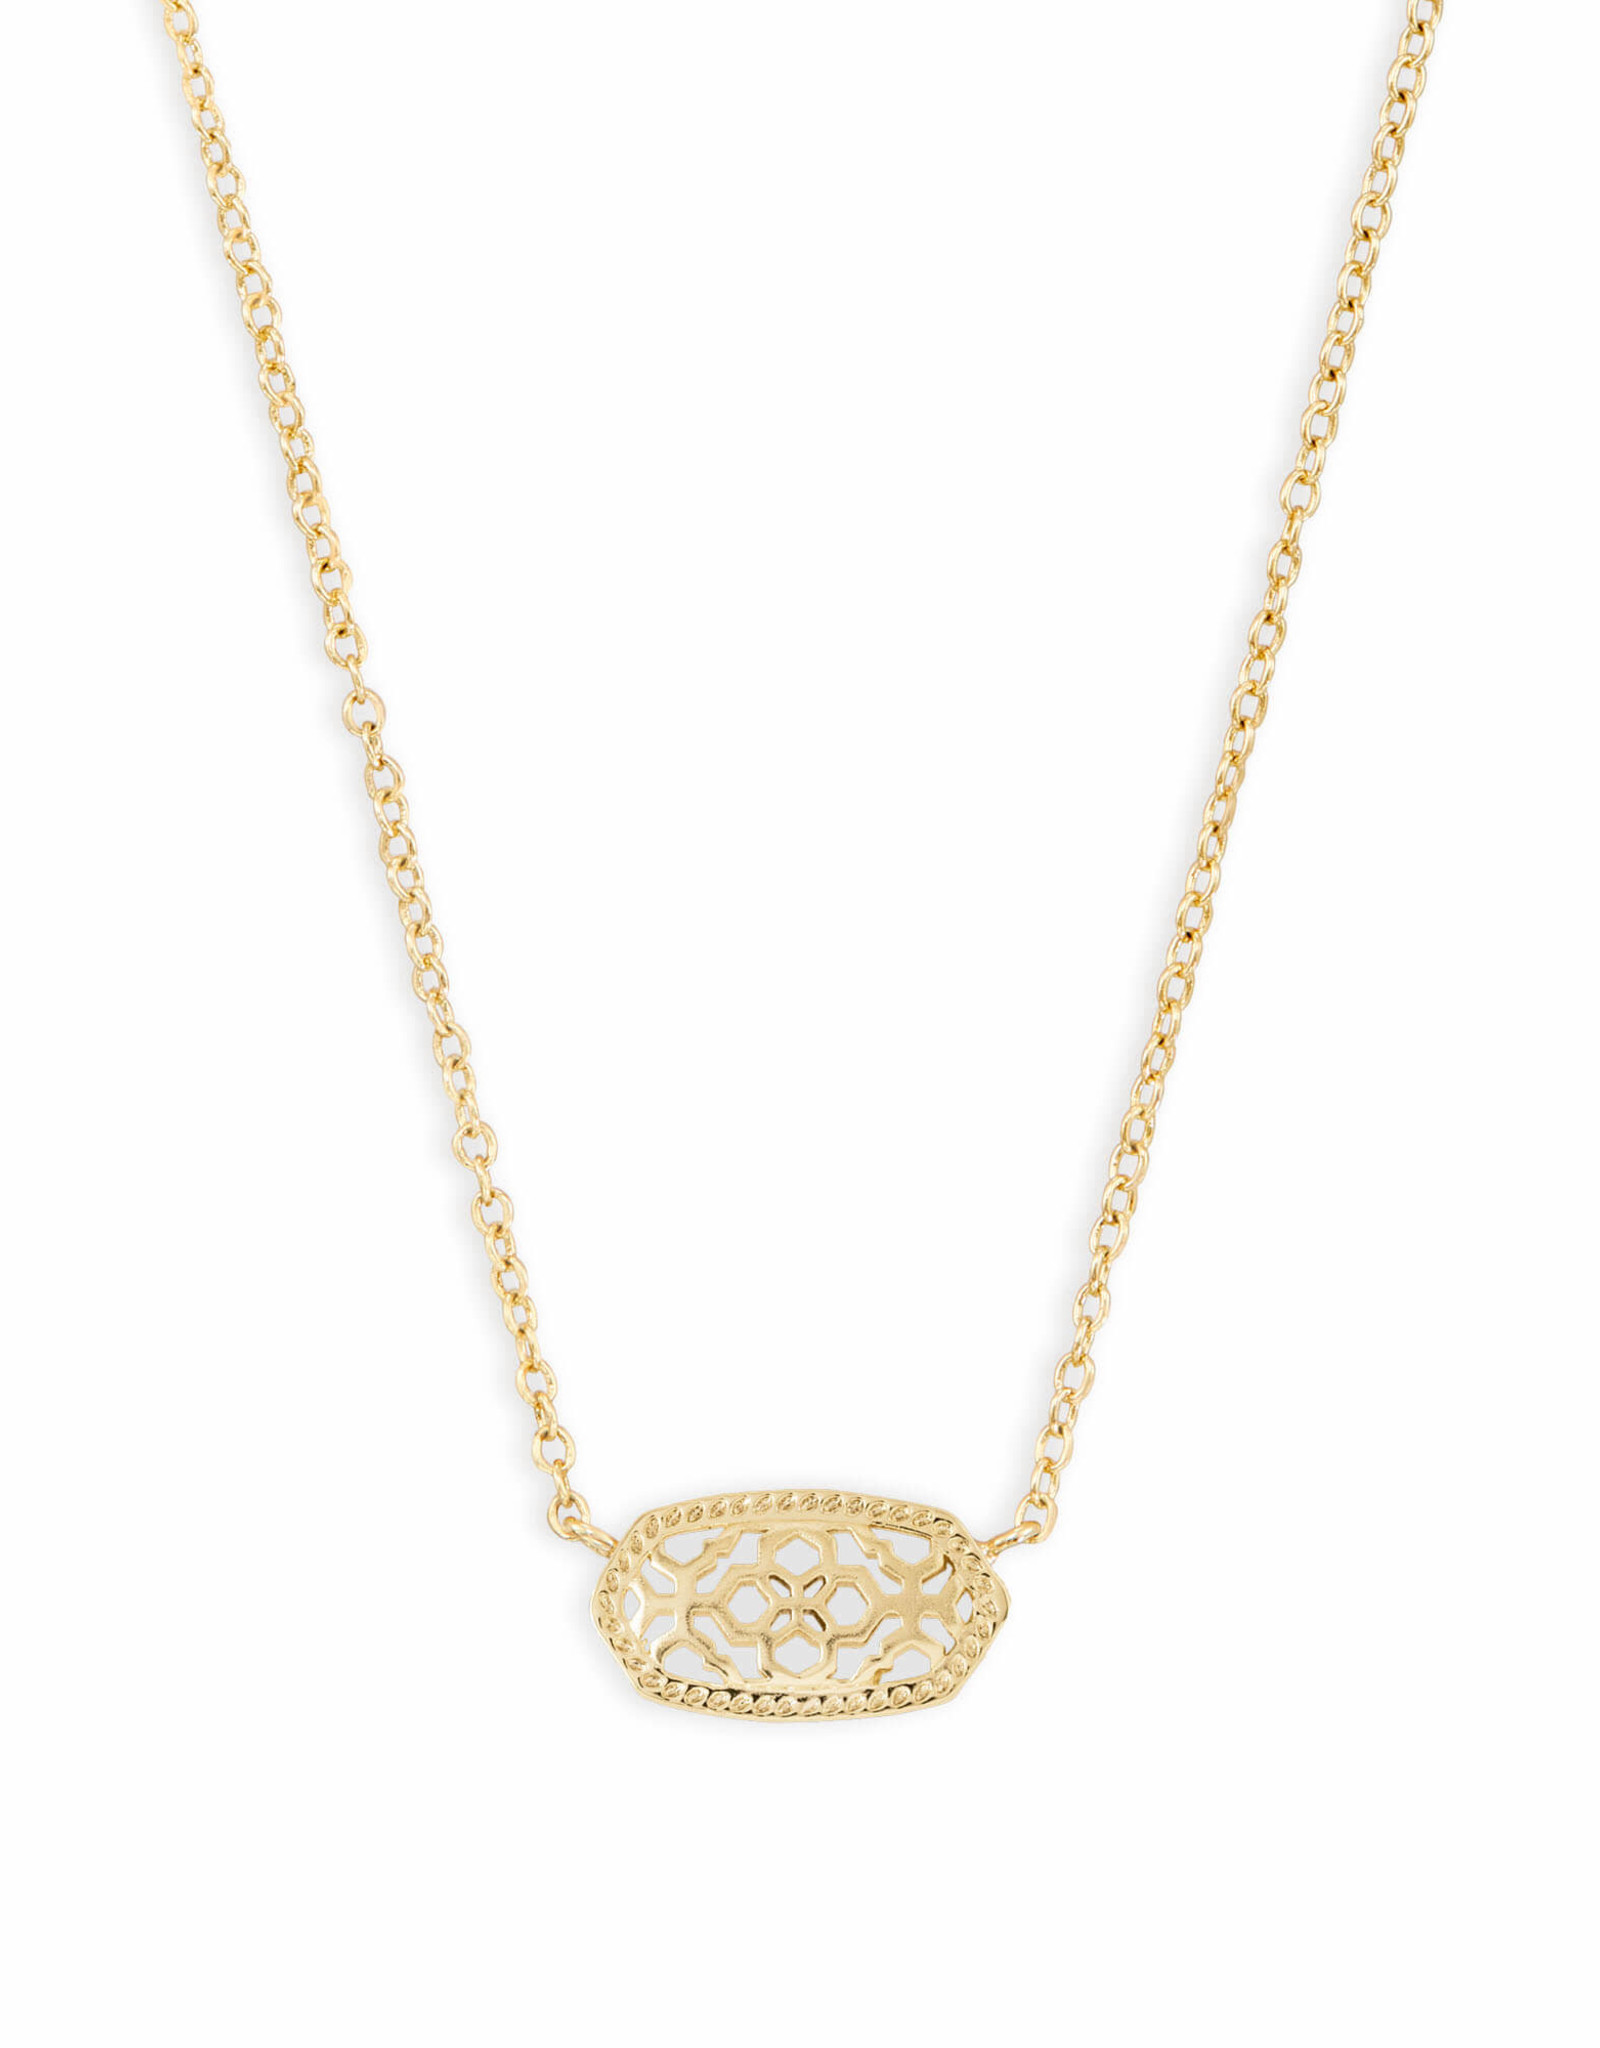 Kendra Scott Elisa Necklace - Gold/Gold